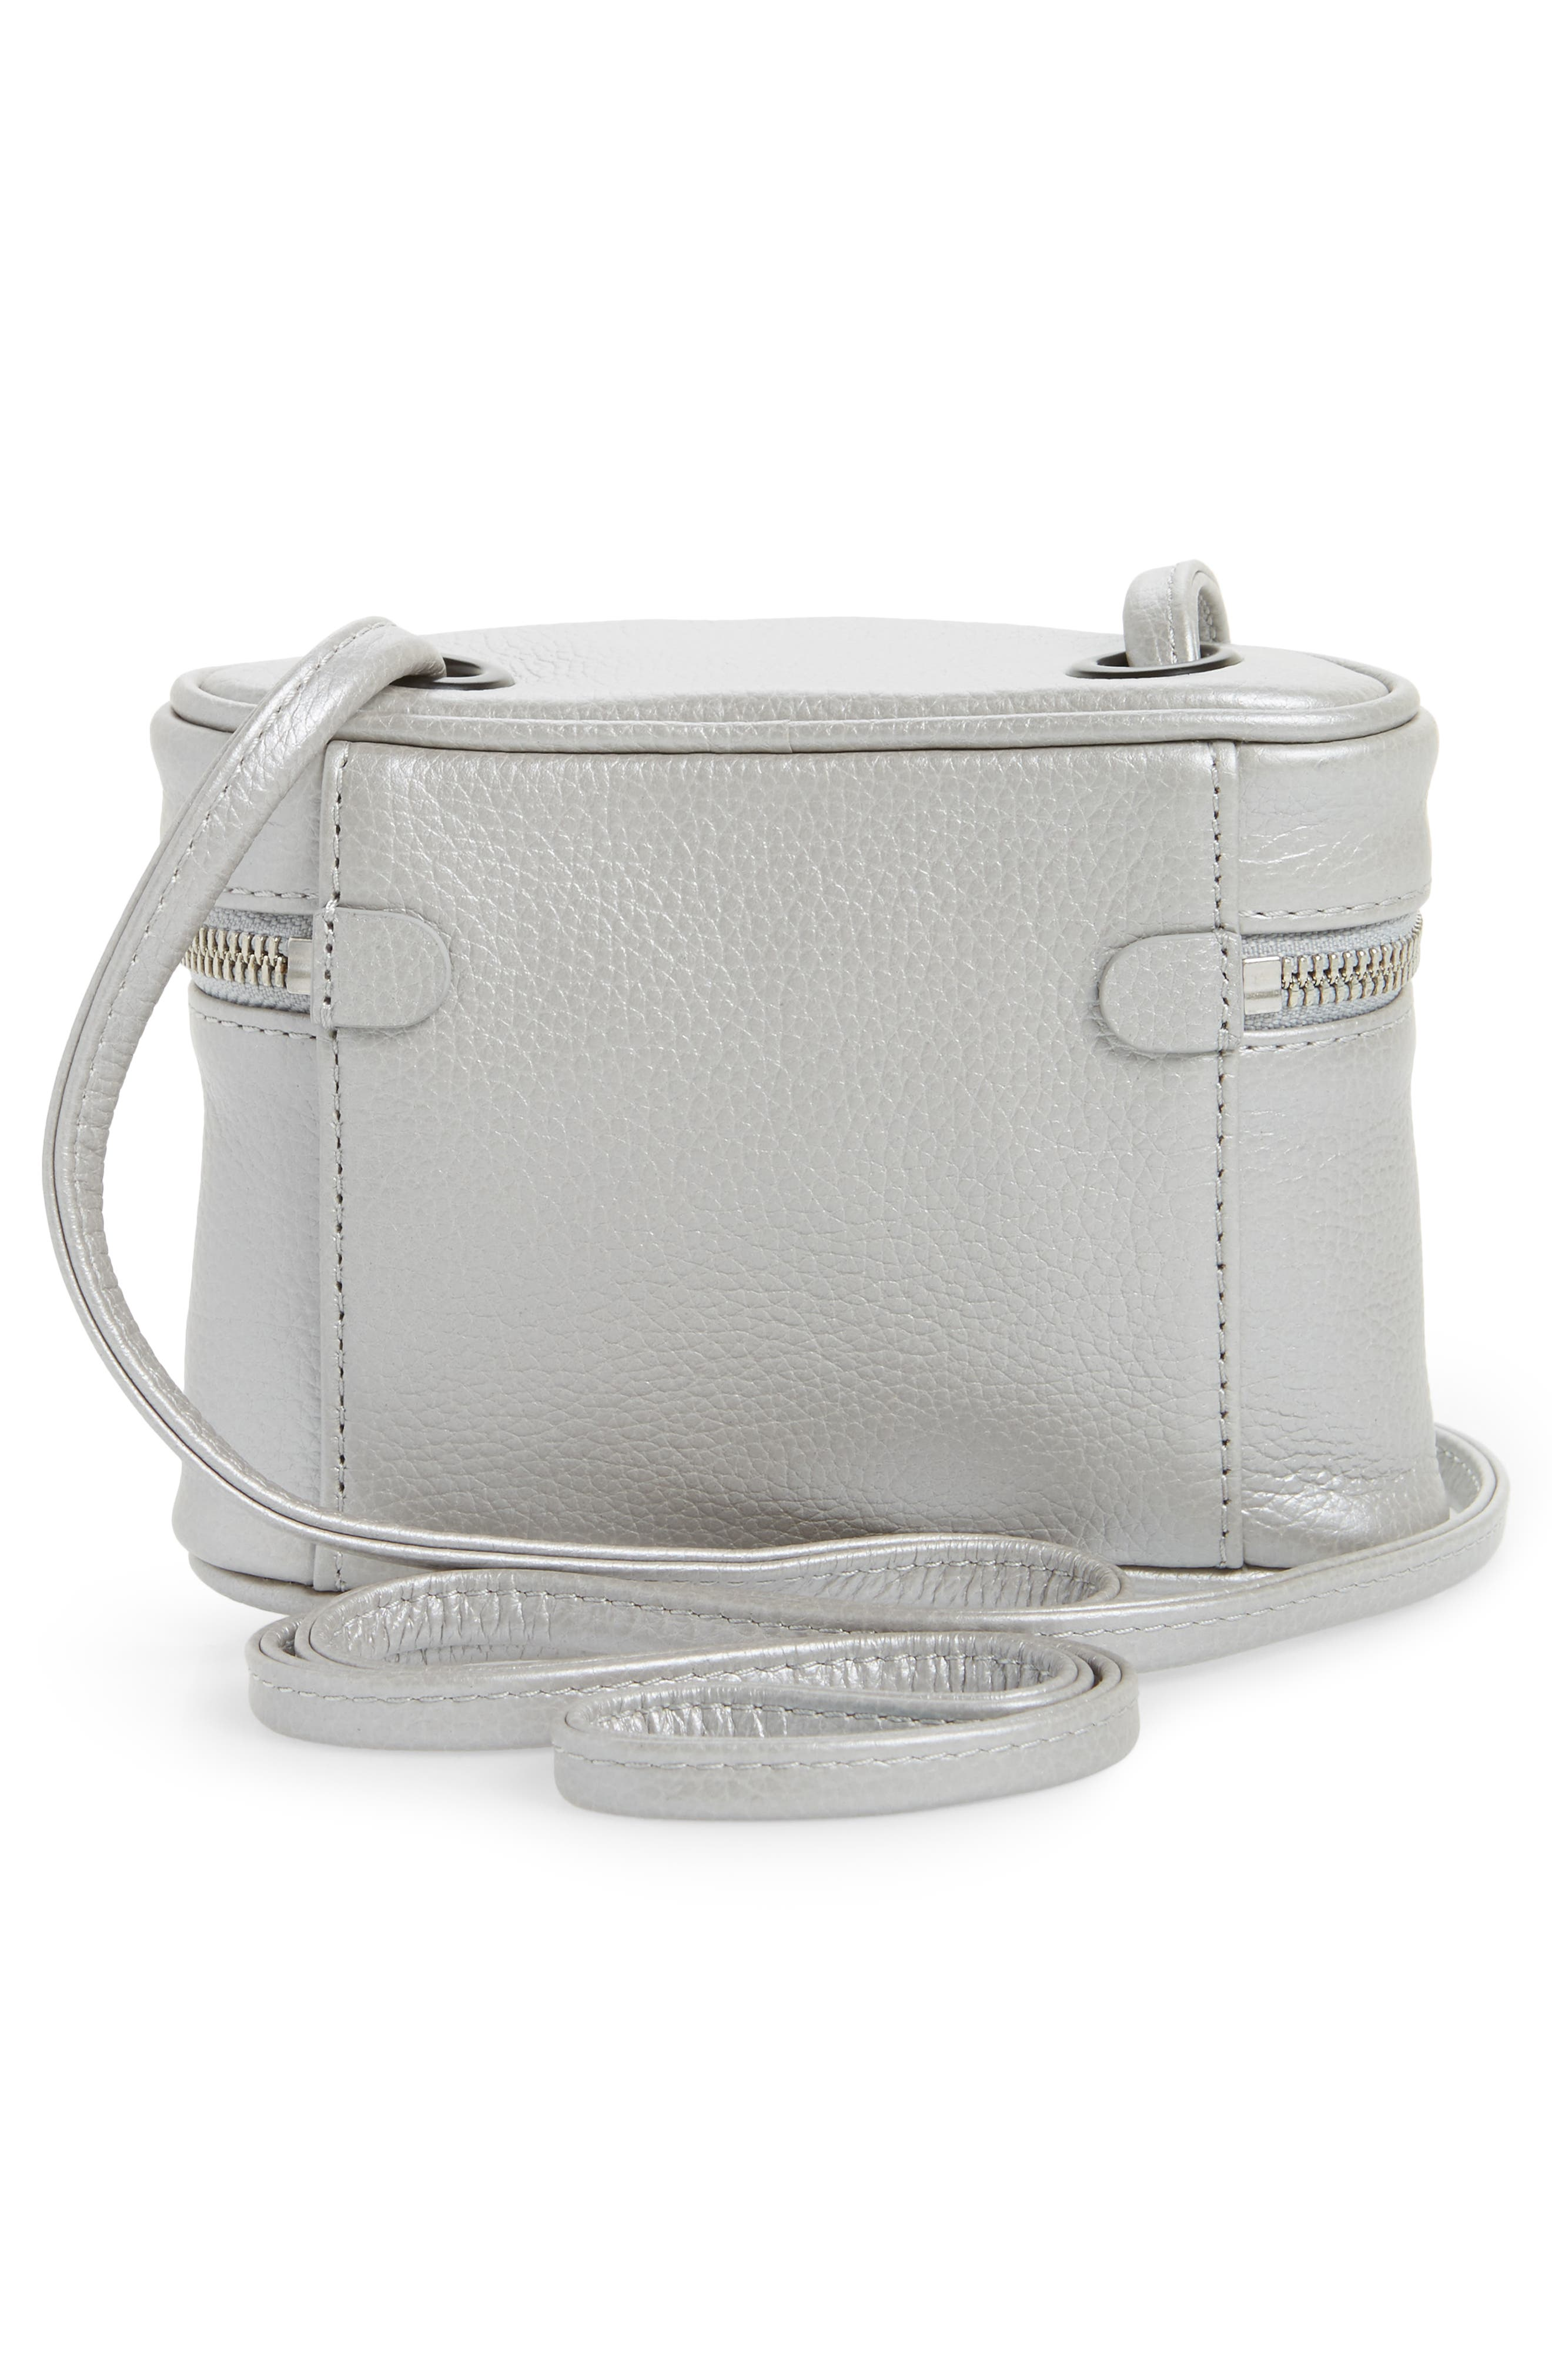 Greenwood Autumn Leather Crossbody Bag,                             Alternate thumbnail 3, color,                             Silver